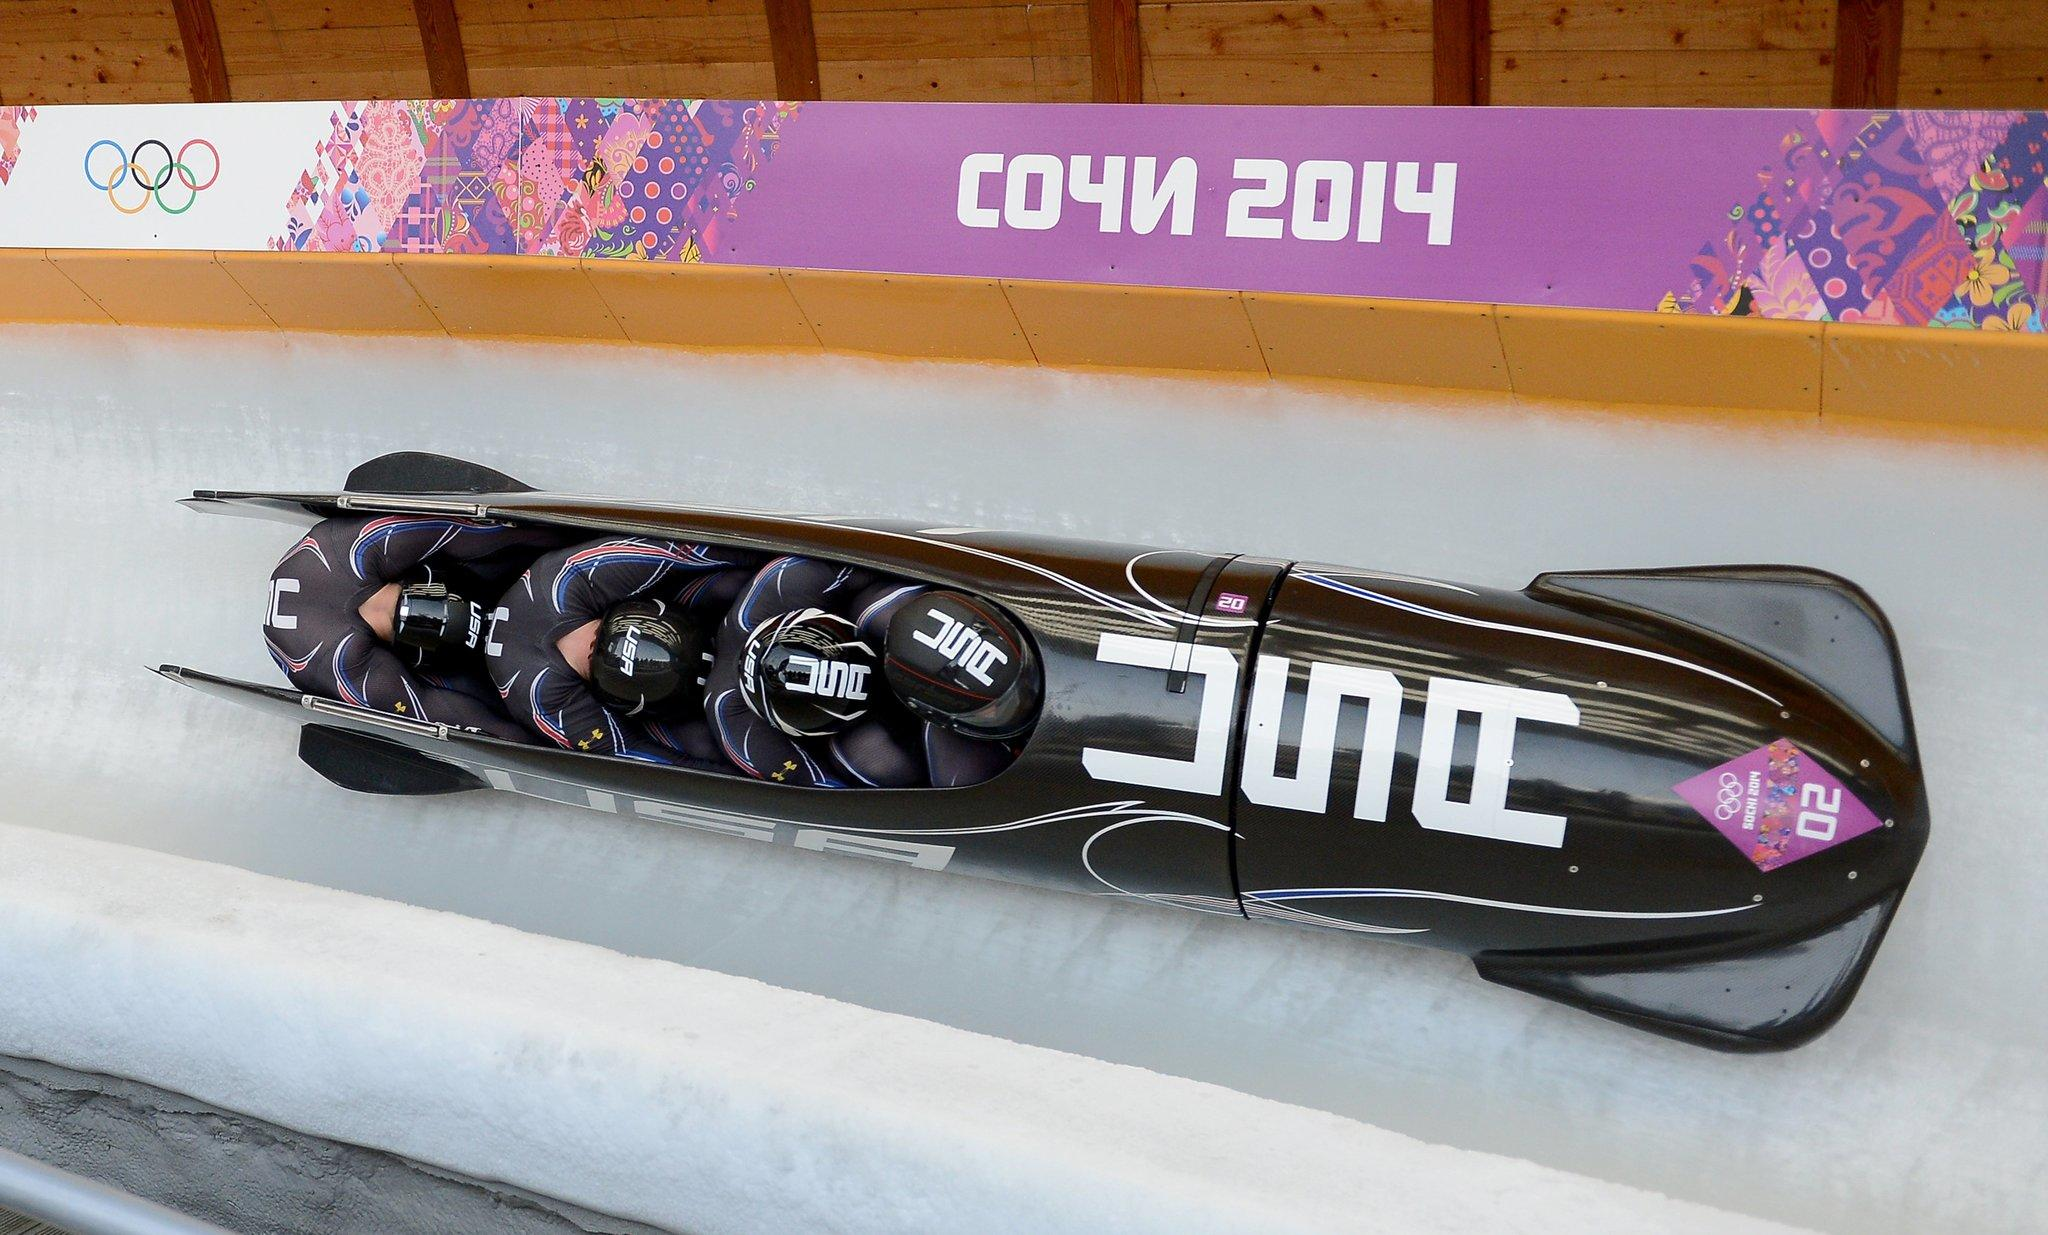 The USA 2 bobsled competes during the third heat of the four-man bobsled event at the Sanki Sliding Centre during the Winter Olympics in Sochi, Russia, Sunday, Feb. 23, 2014. The USA 2 team, Steven Holcomb, Curtis Tomasevicz, Steven Langton and Christopher Fogt, won the bronze medal in the event.